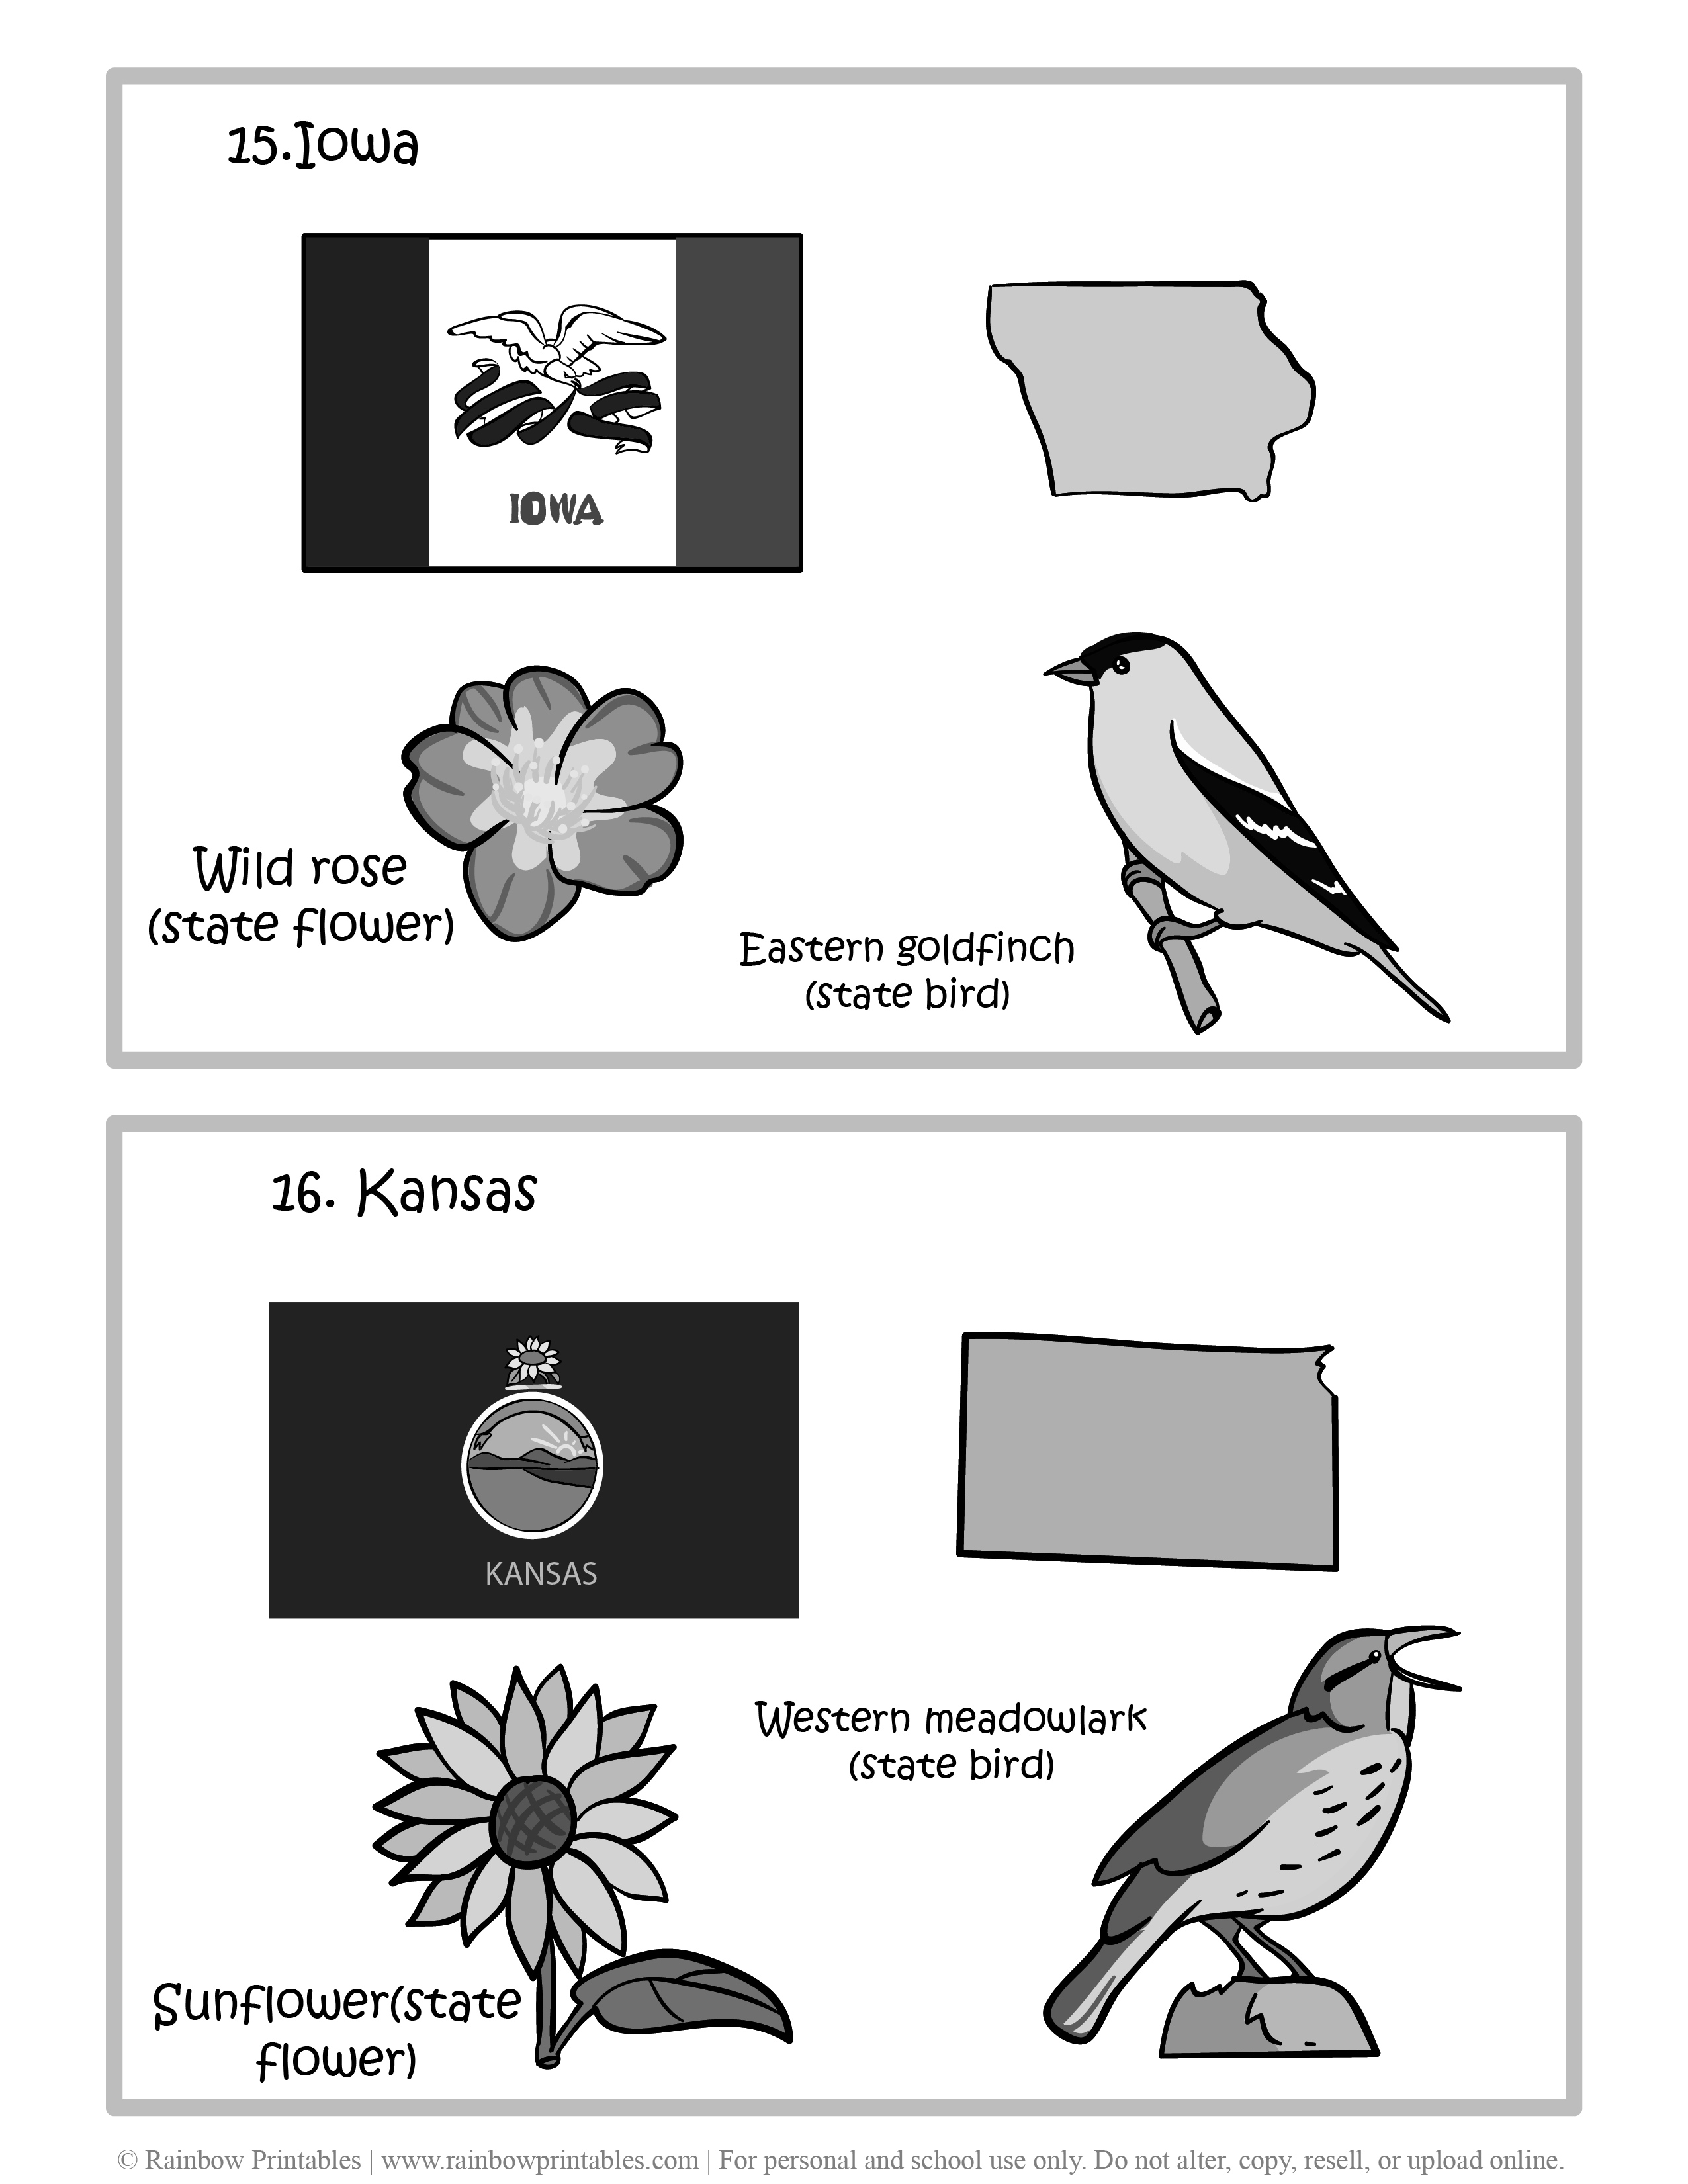 Iowa, Kansas, 50 US State Flag, State Bird, State Flower, United States of America - American States Geography Worksheet Class Lesson Printables Flashcards Black White